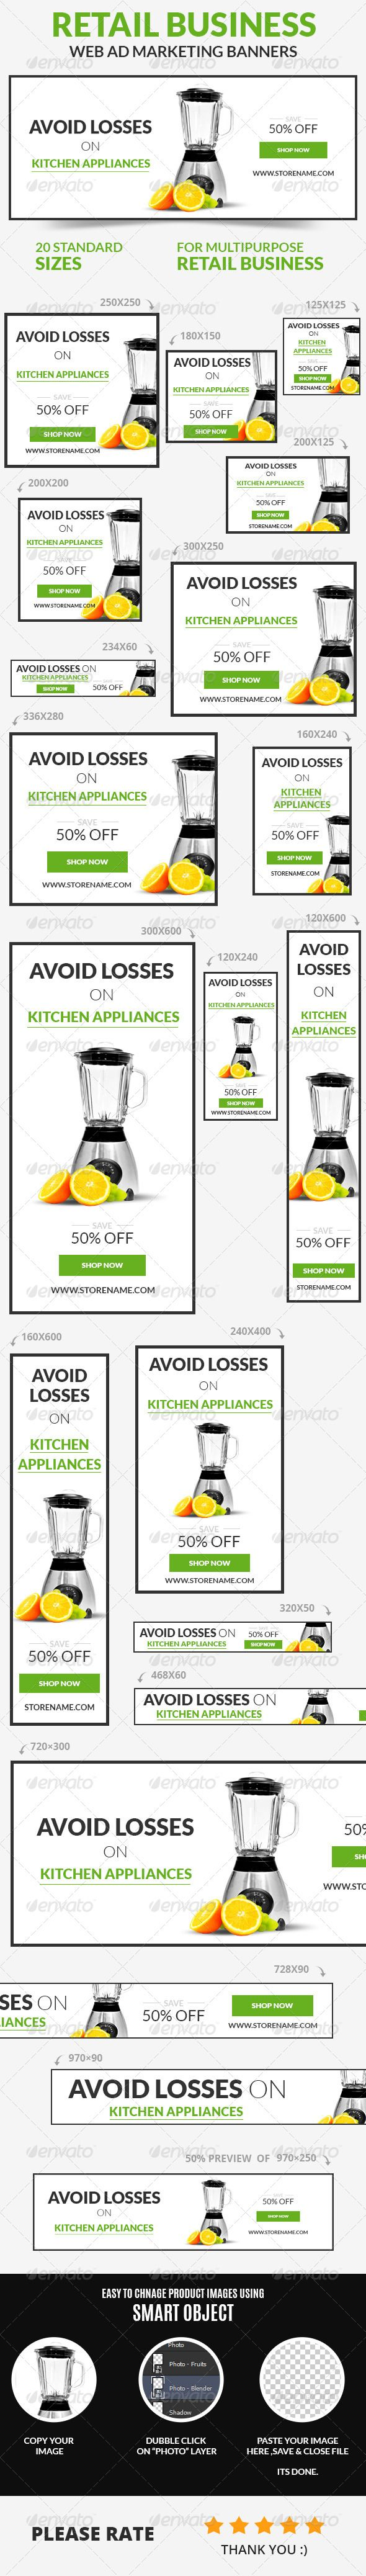 Retail Business Web Ad Marketing Banners Template PSD | Buy and Download: http://graphicriver.net/item/retail-business-web-ad-marketing-banners/7401293?WT.ac=category_thumb&WT.z_author=webduck&ref=ksioks